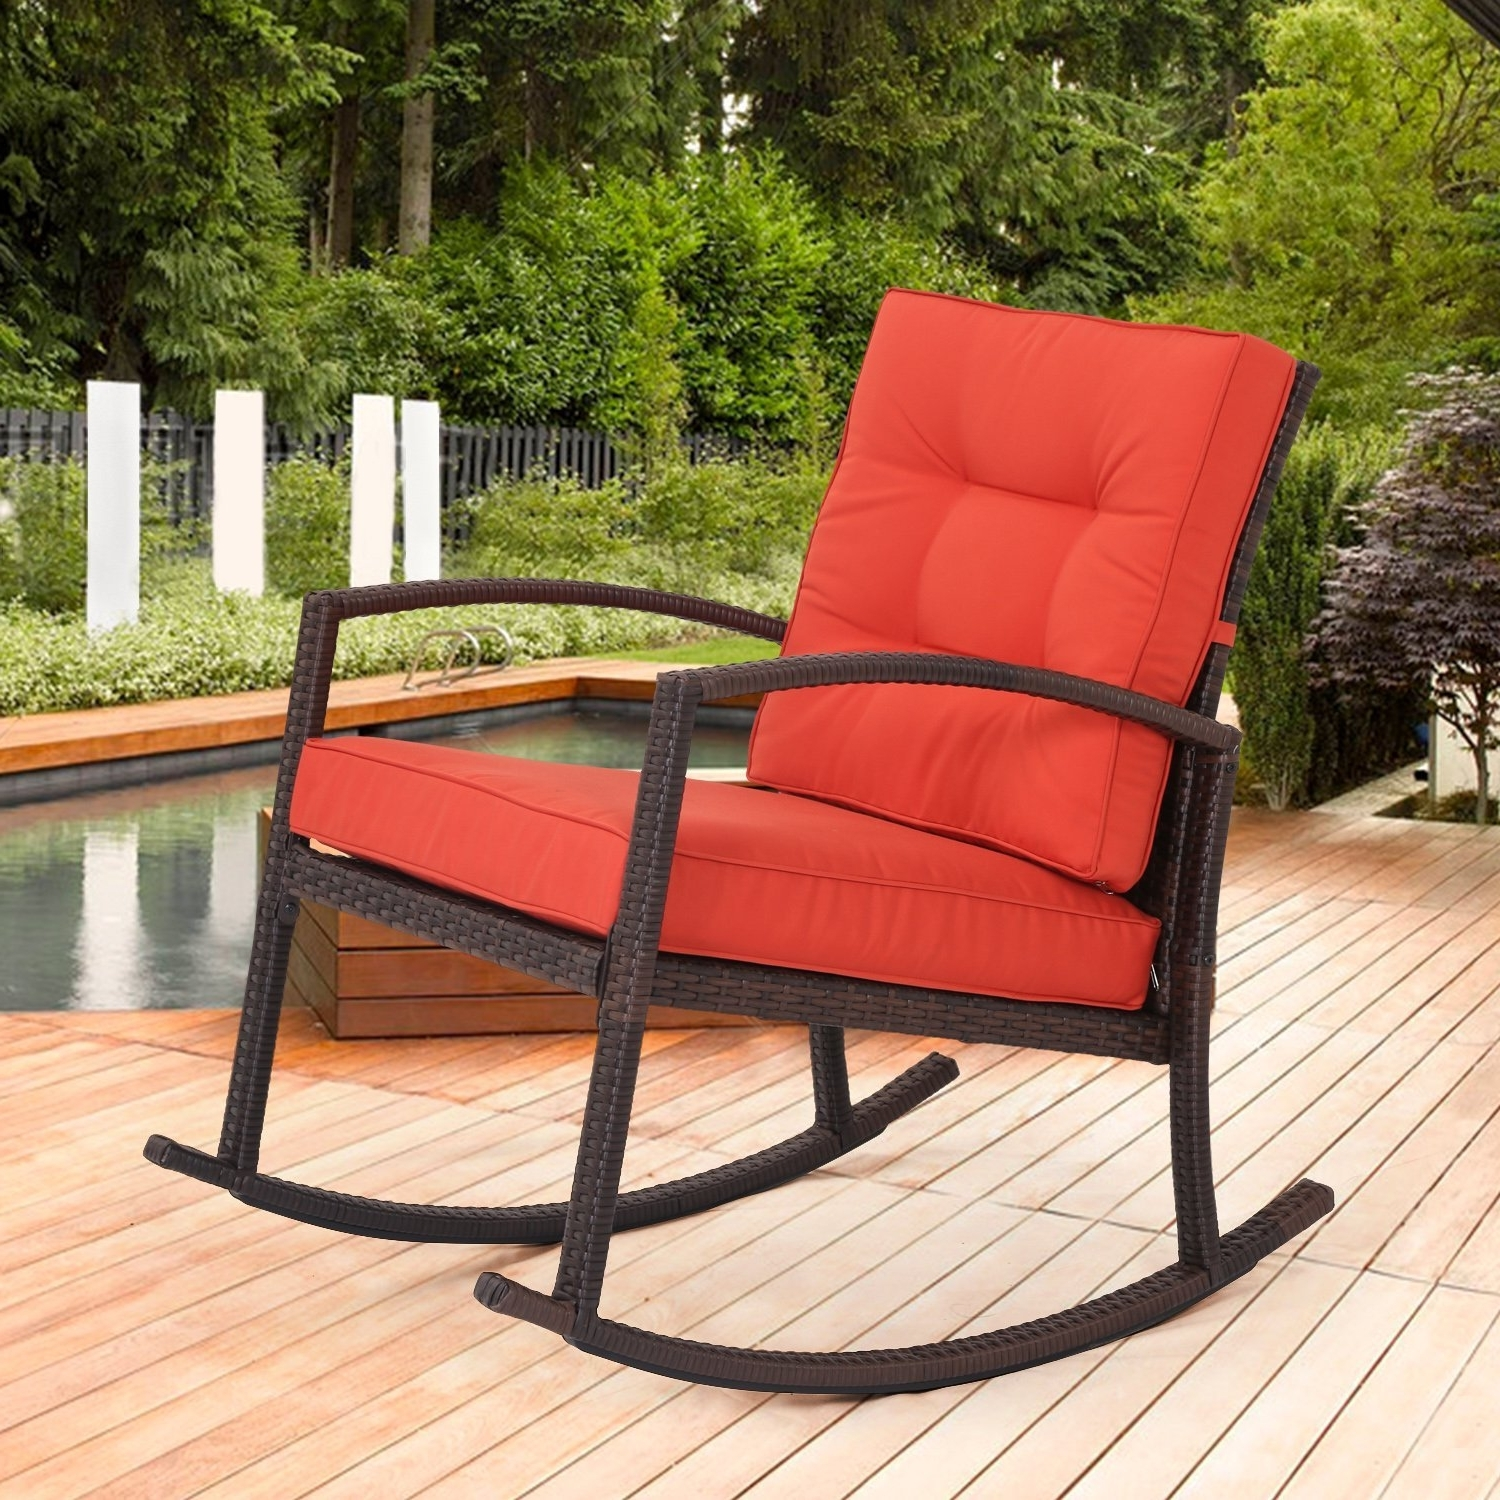 Stackable Patio Rocking Chairs Pertaining To Well Liked Patio : Patio Furniture Cushions Matching Umbrella Lovely Furniture (View 7 of 15)